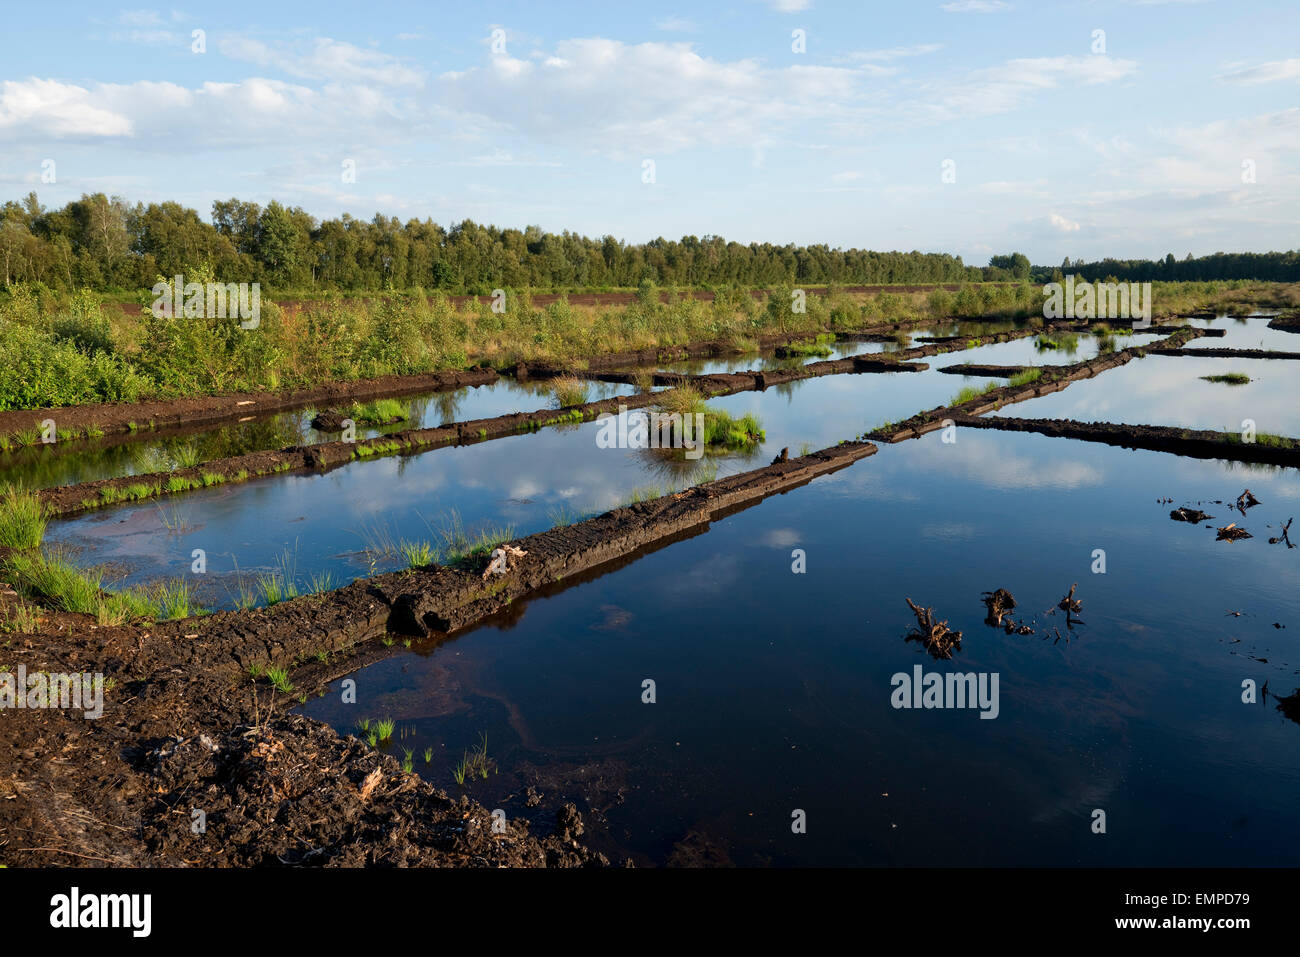 Excavated moorland prepared for renaturation, Great Moor nature reserve, Lower Saxony, Germany - Stock Image